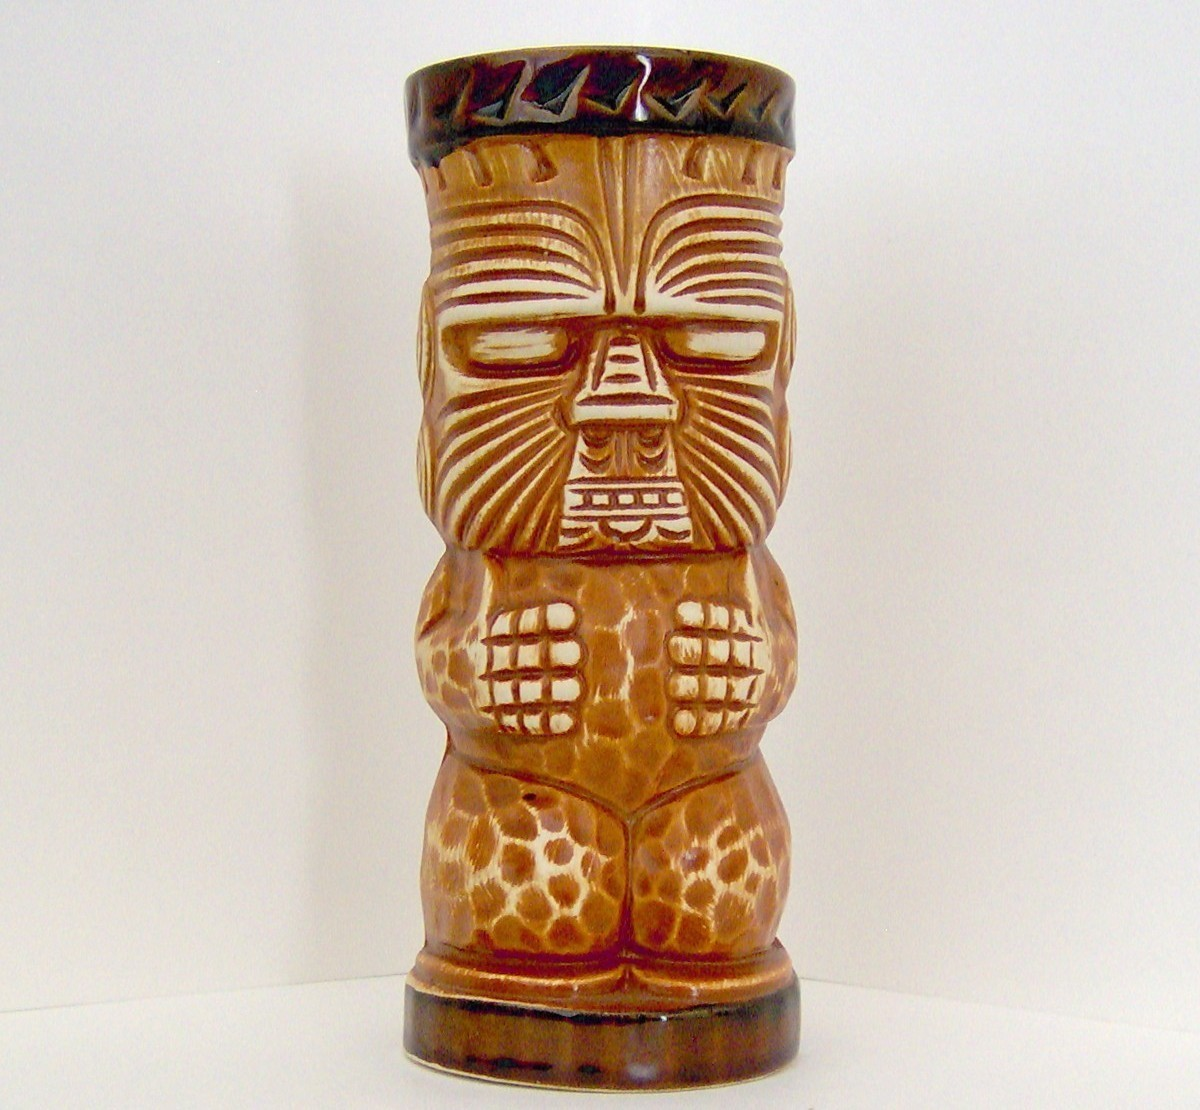 Cute Ceramic Tiki Mug from Bally's Reno, Nevada